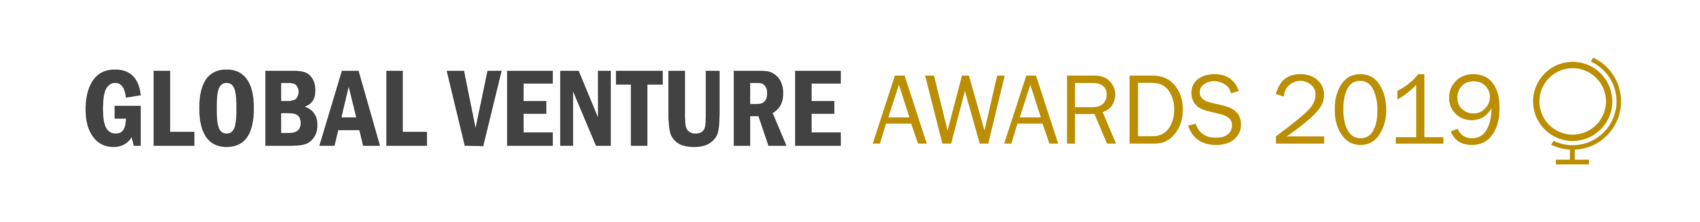 Global Venture 2019 Awards Logo